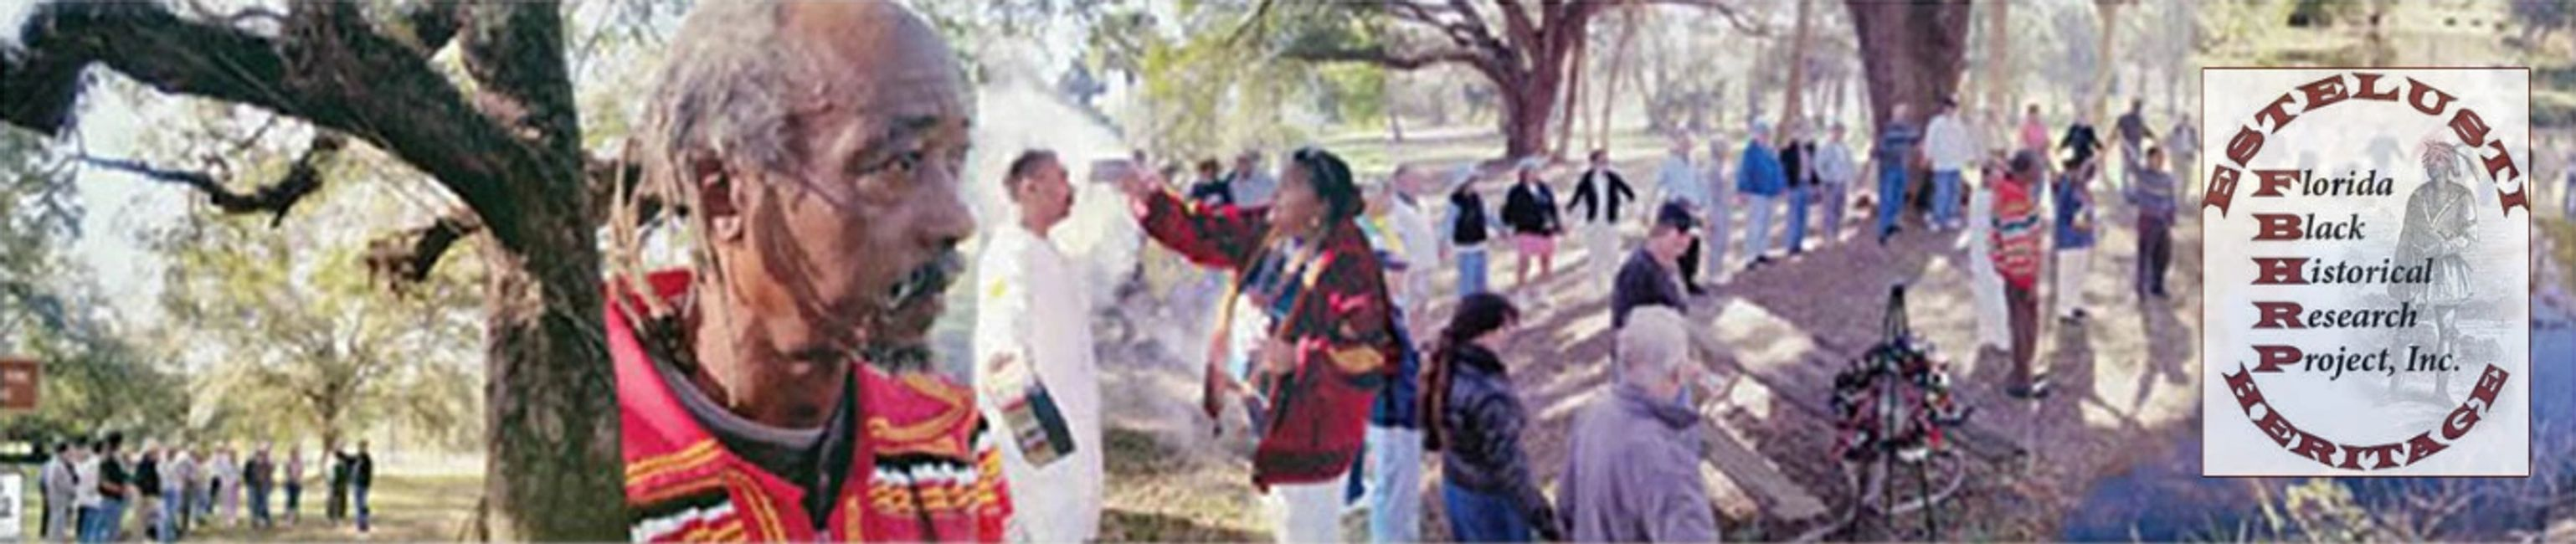 Collage of images from FBHRP depicting outside ceremonies burning herbs with people lined up,